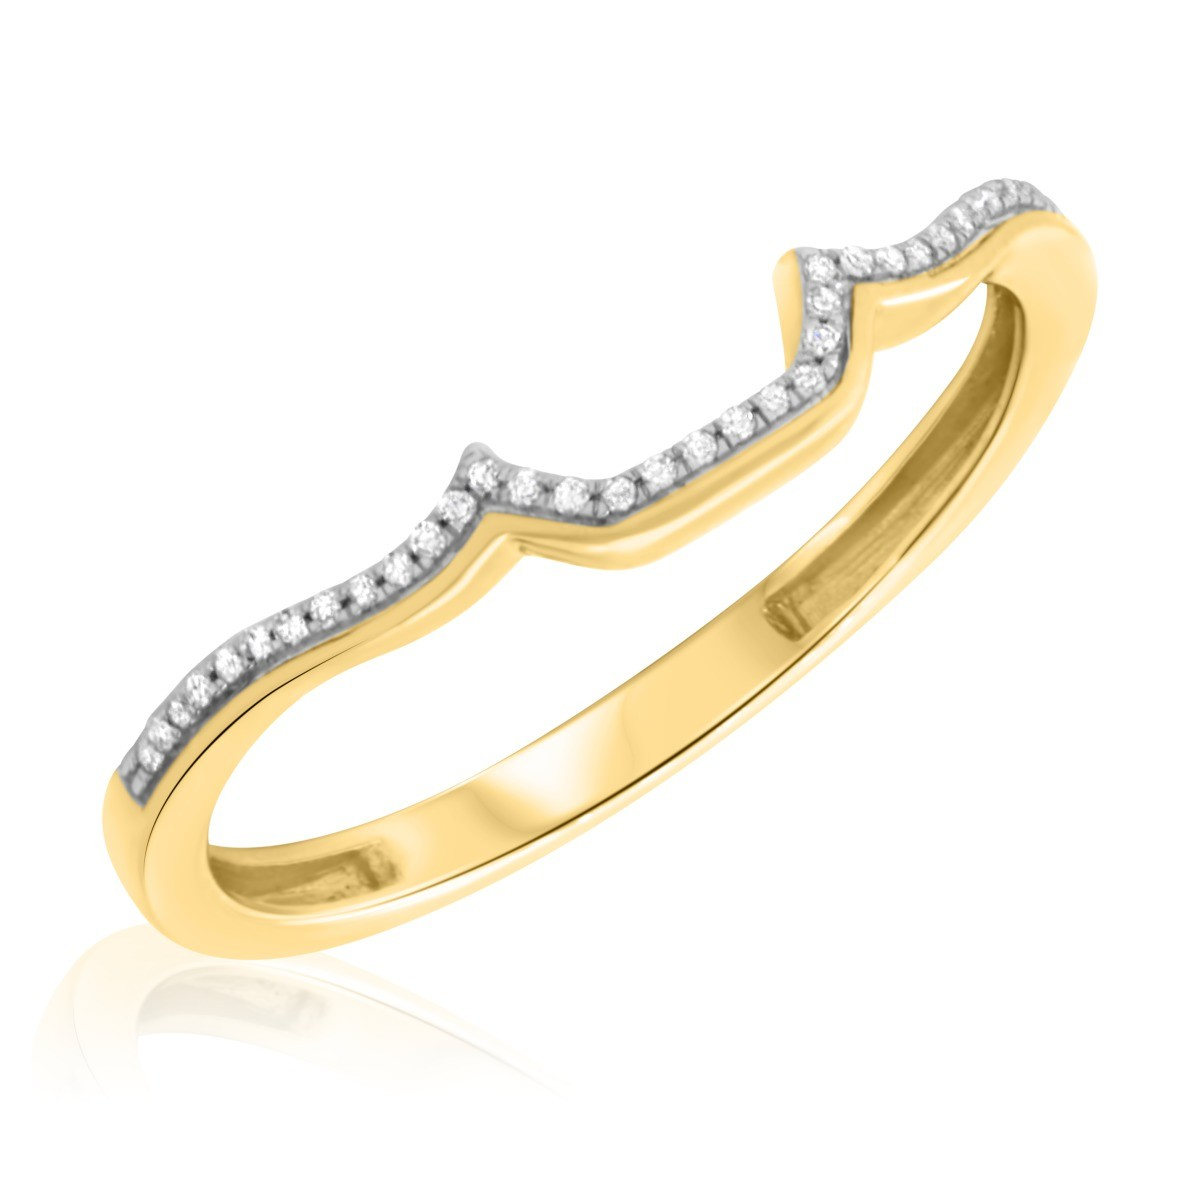 1/15 Carat T.W. Diamond Ladies Wedding Band  14K Yellow Gold